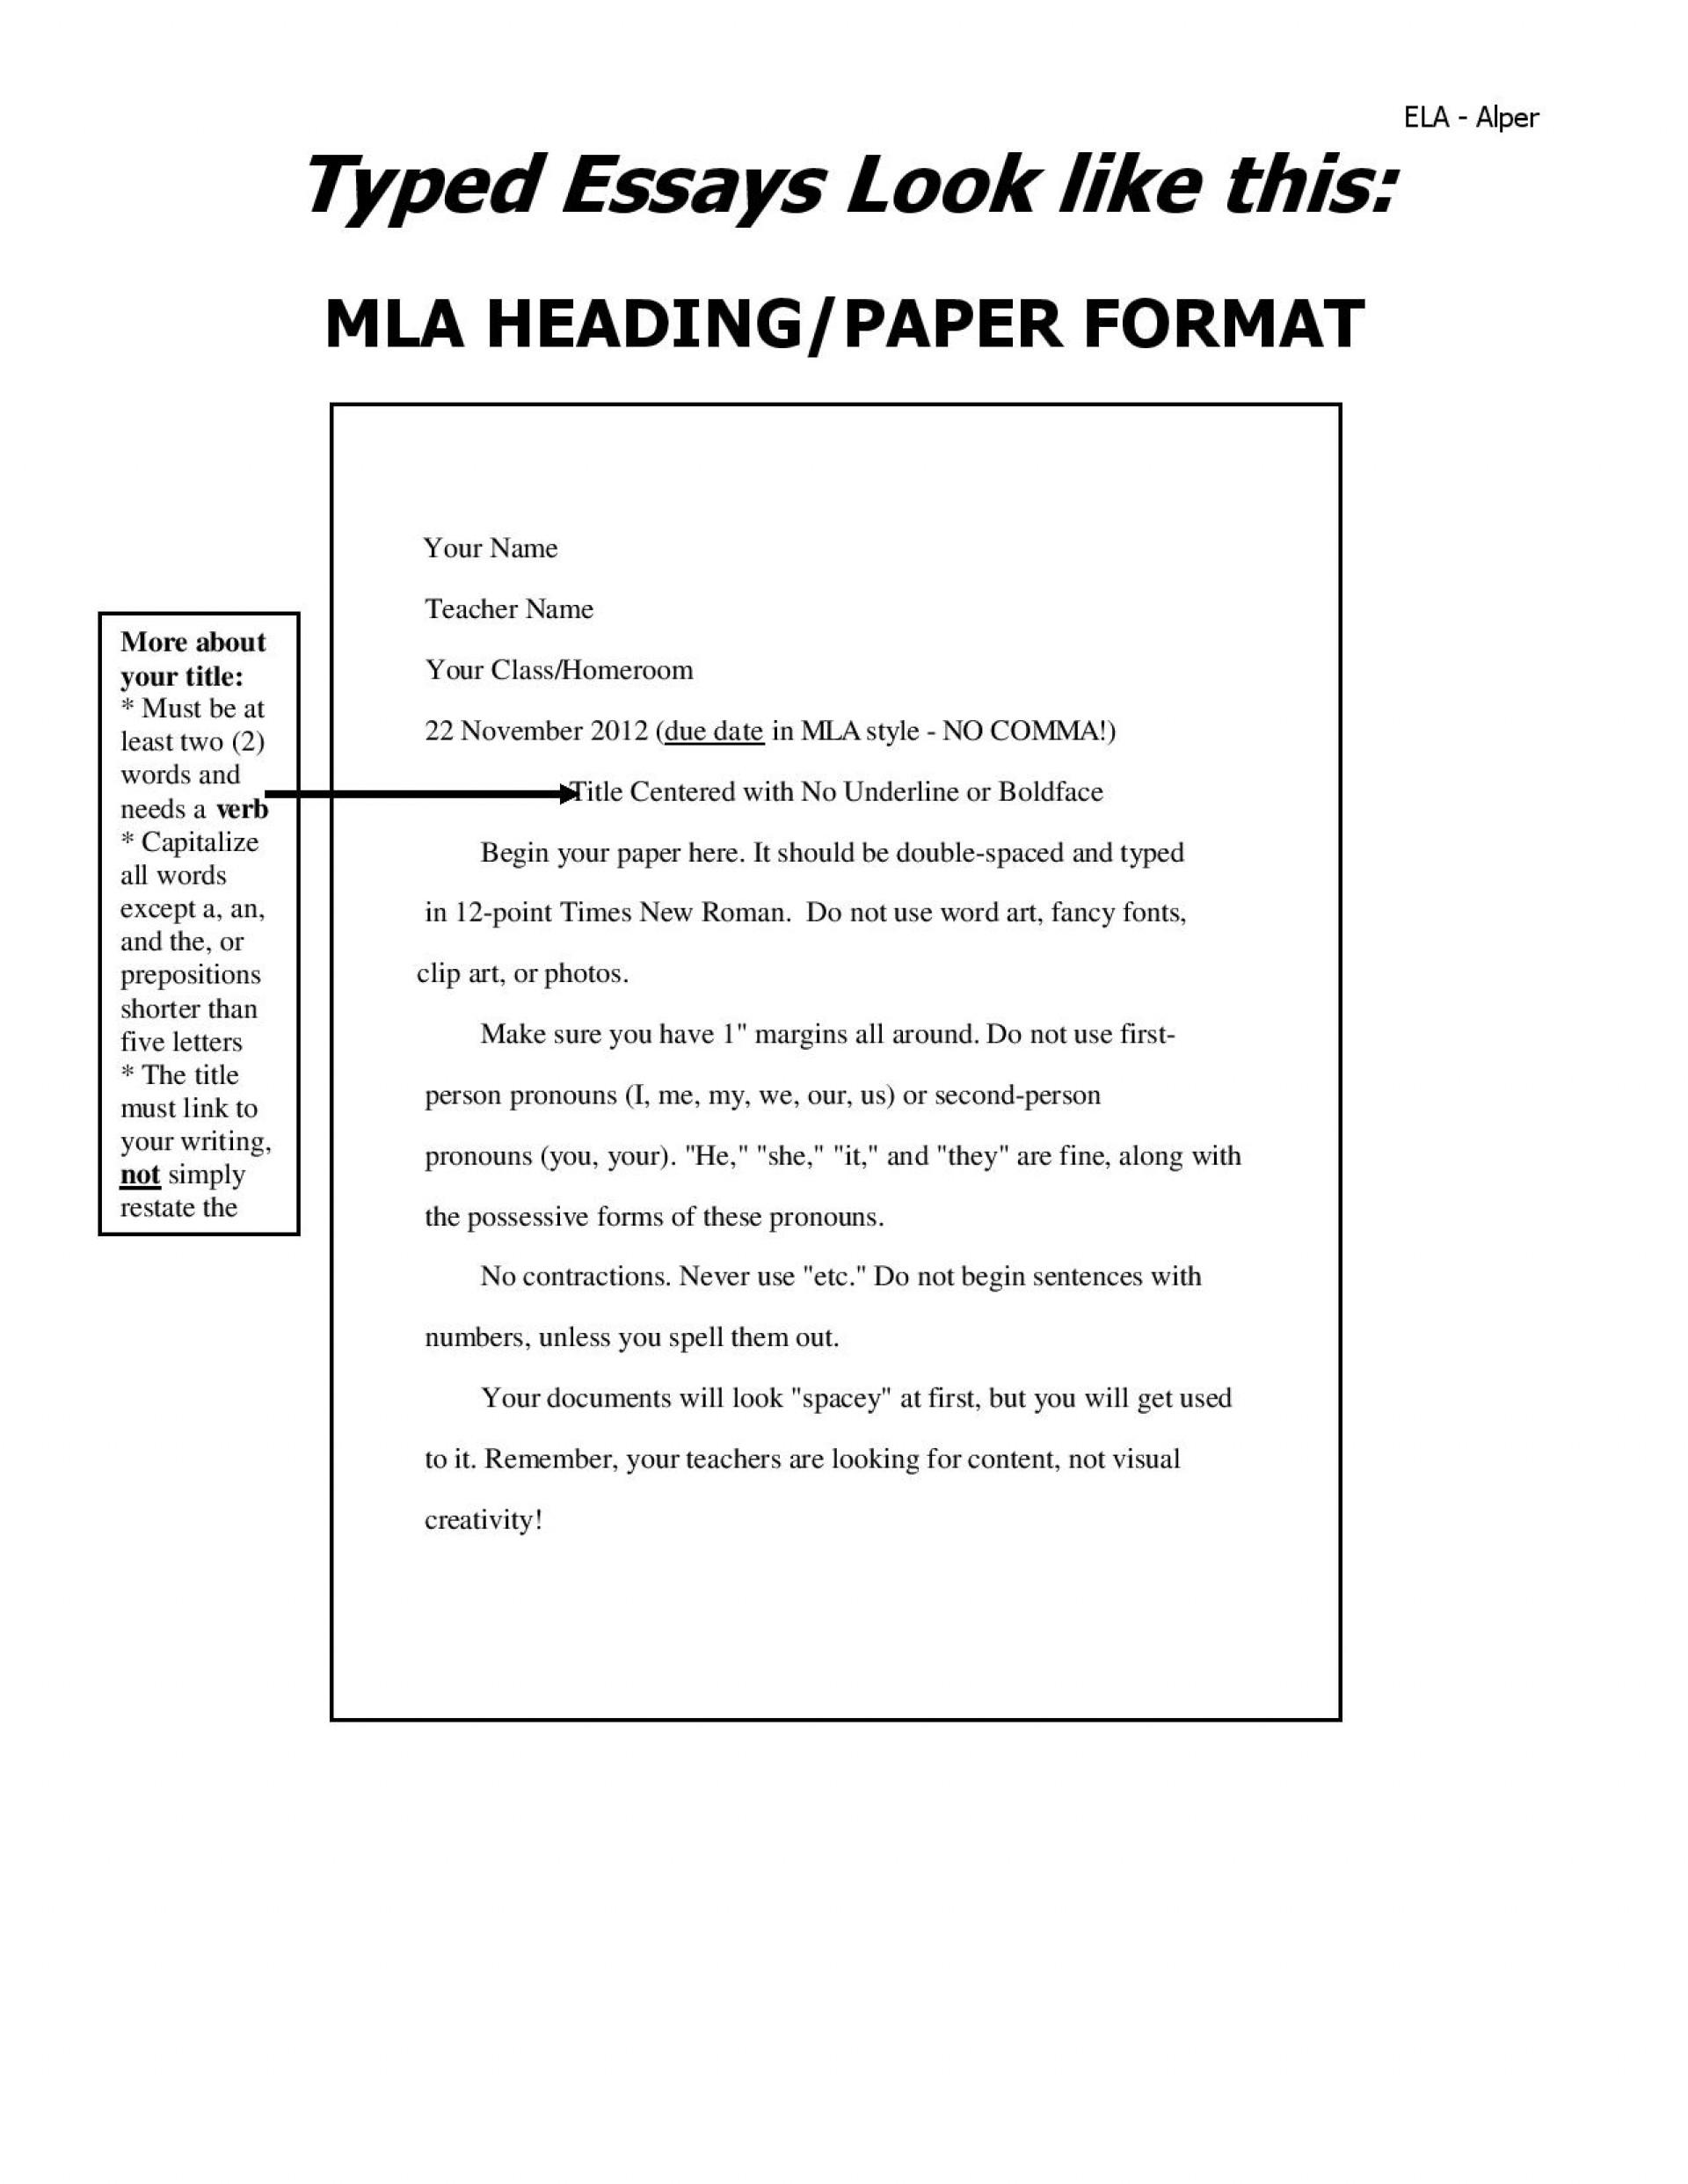 011 Word Essay Outline Outine Cover Letter One Example  Typed Essays Look Like This Pag Topic Thousand Oxford Examples Spm Describe Yourself In Words To Not Unique Use Persuasive An Expository1920